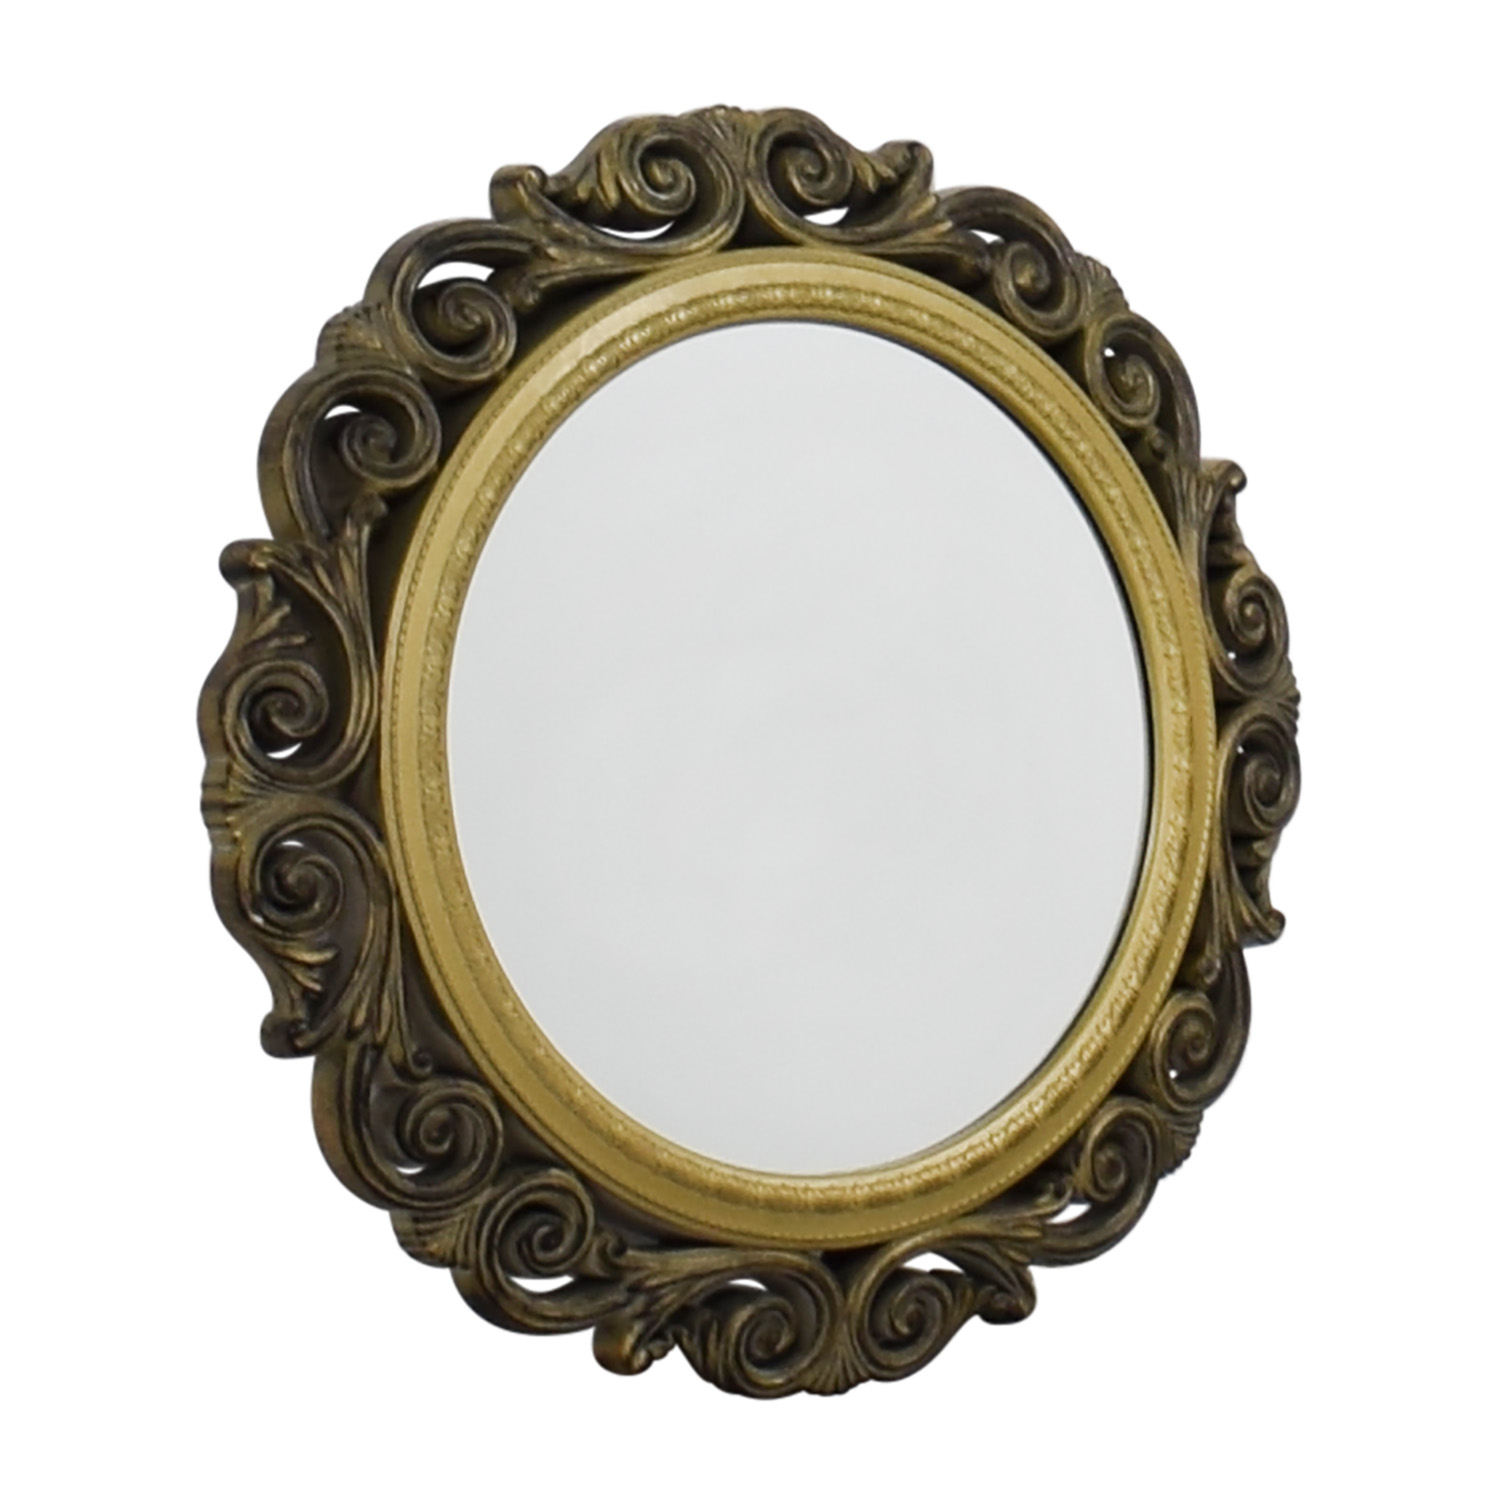 Gold Scrolled Frame Round Wall Mirror / Mirrors